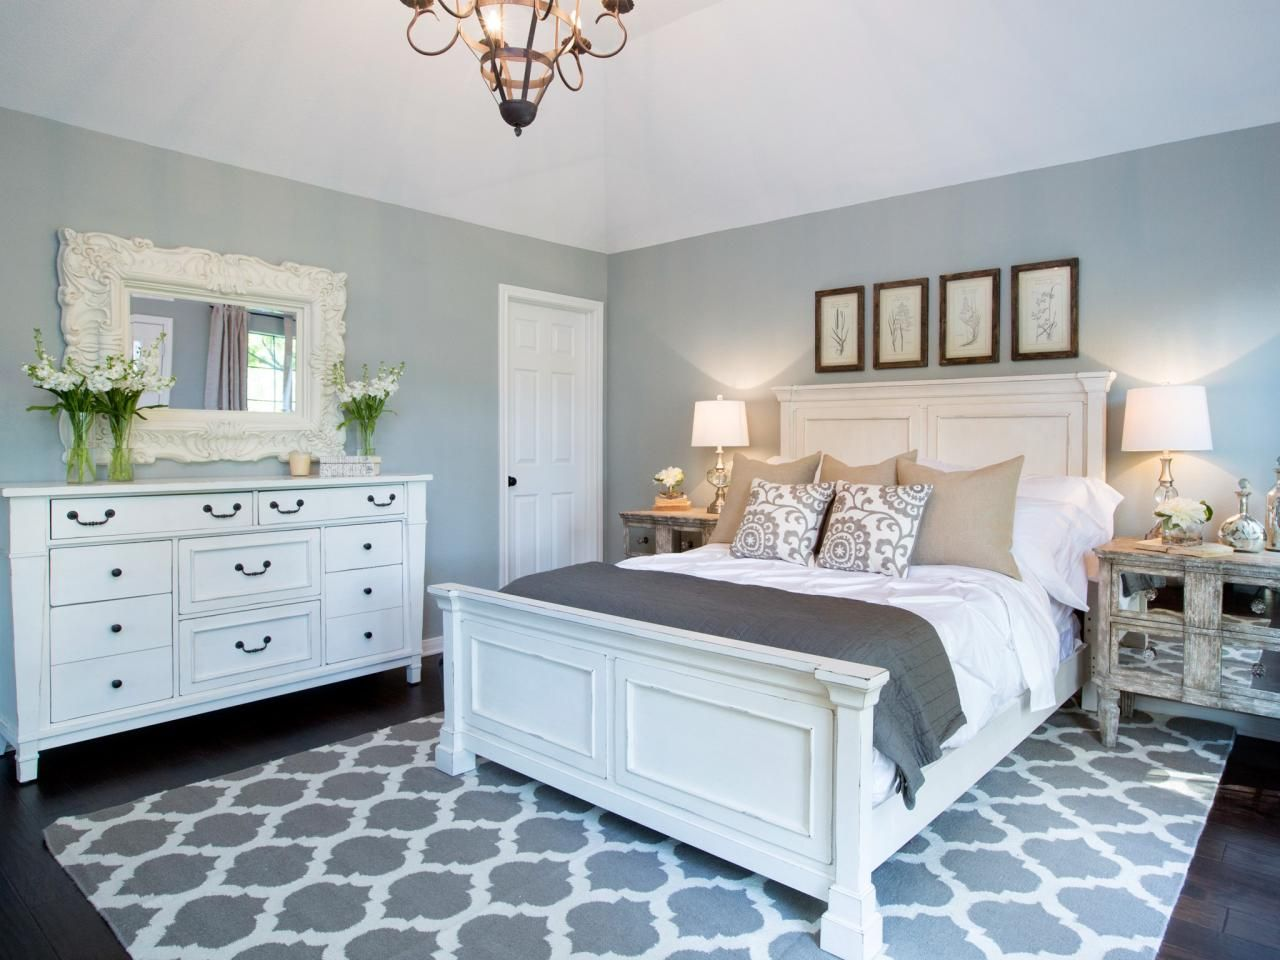 Bedroom Design Ideas With White Furniture fixer upper: yours, mine, ours and a home on the river | joanna